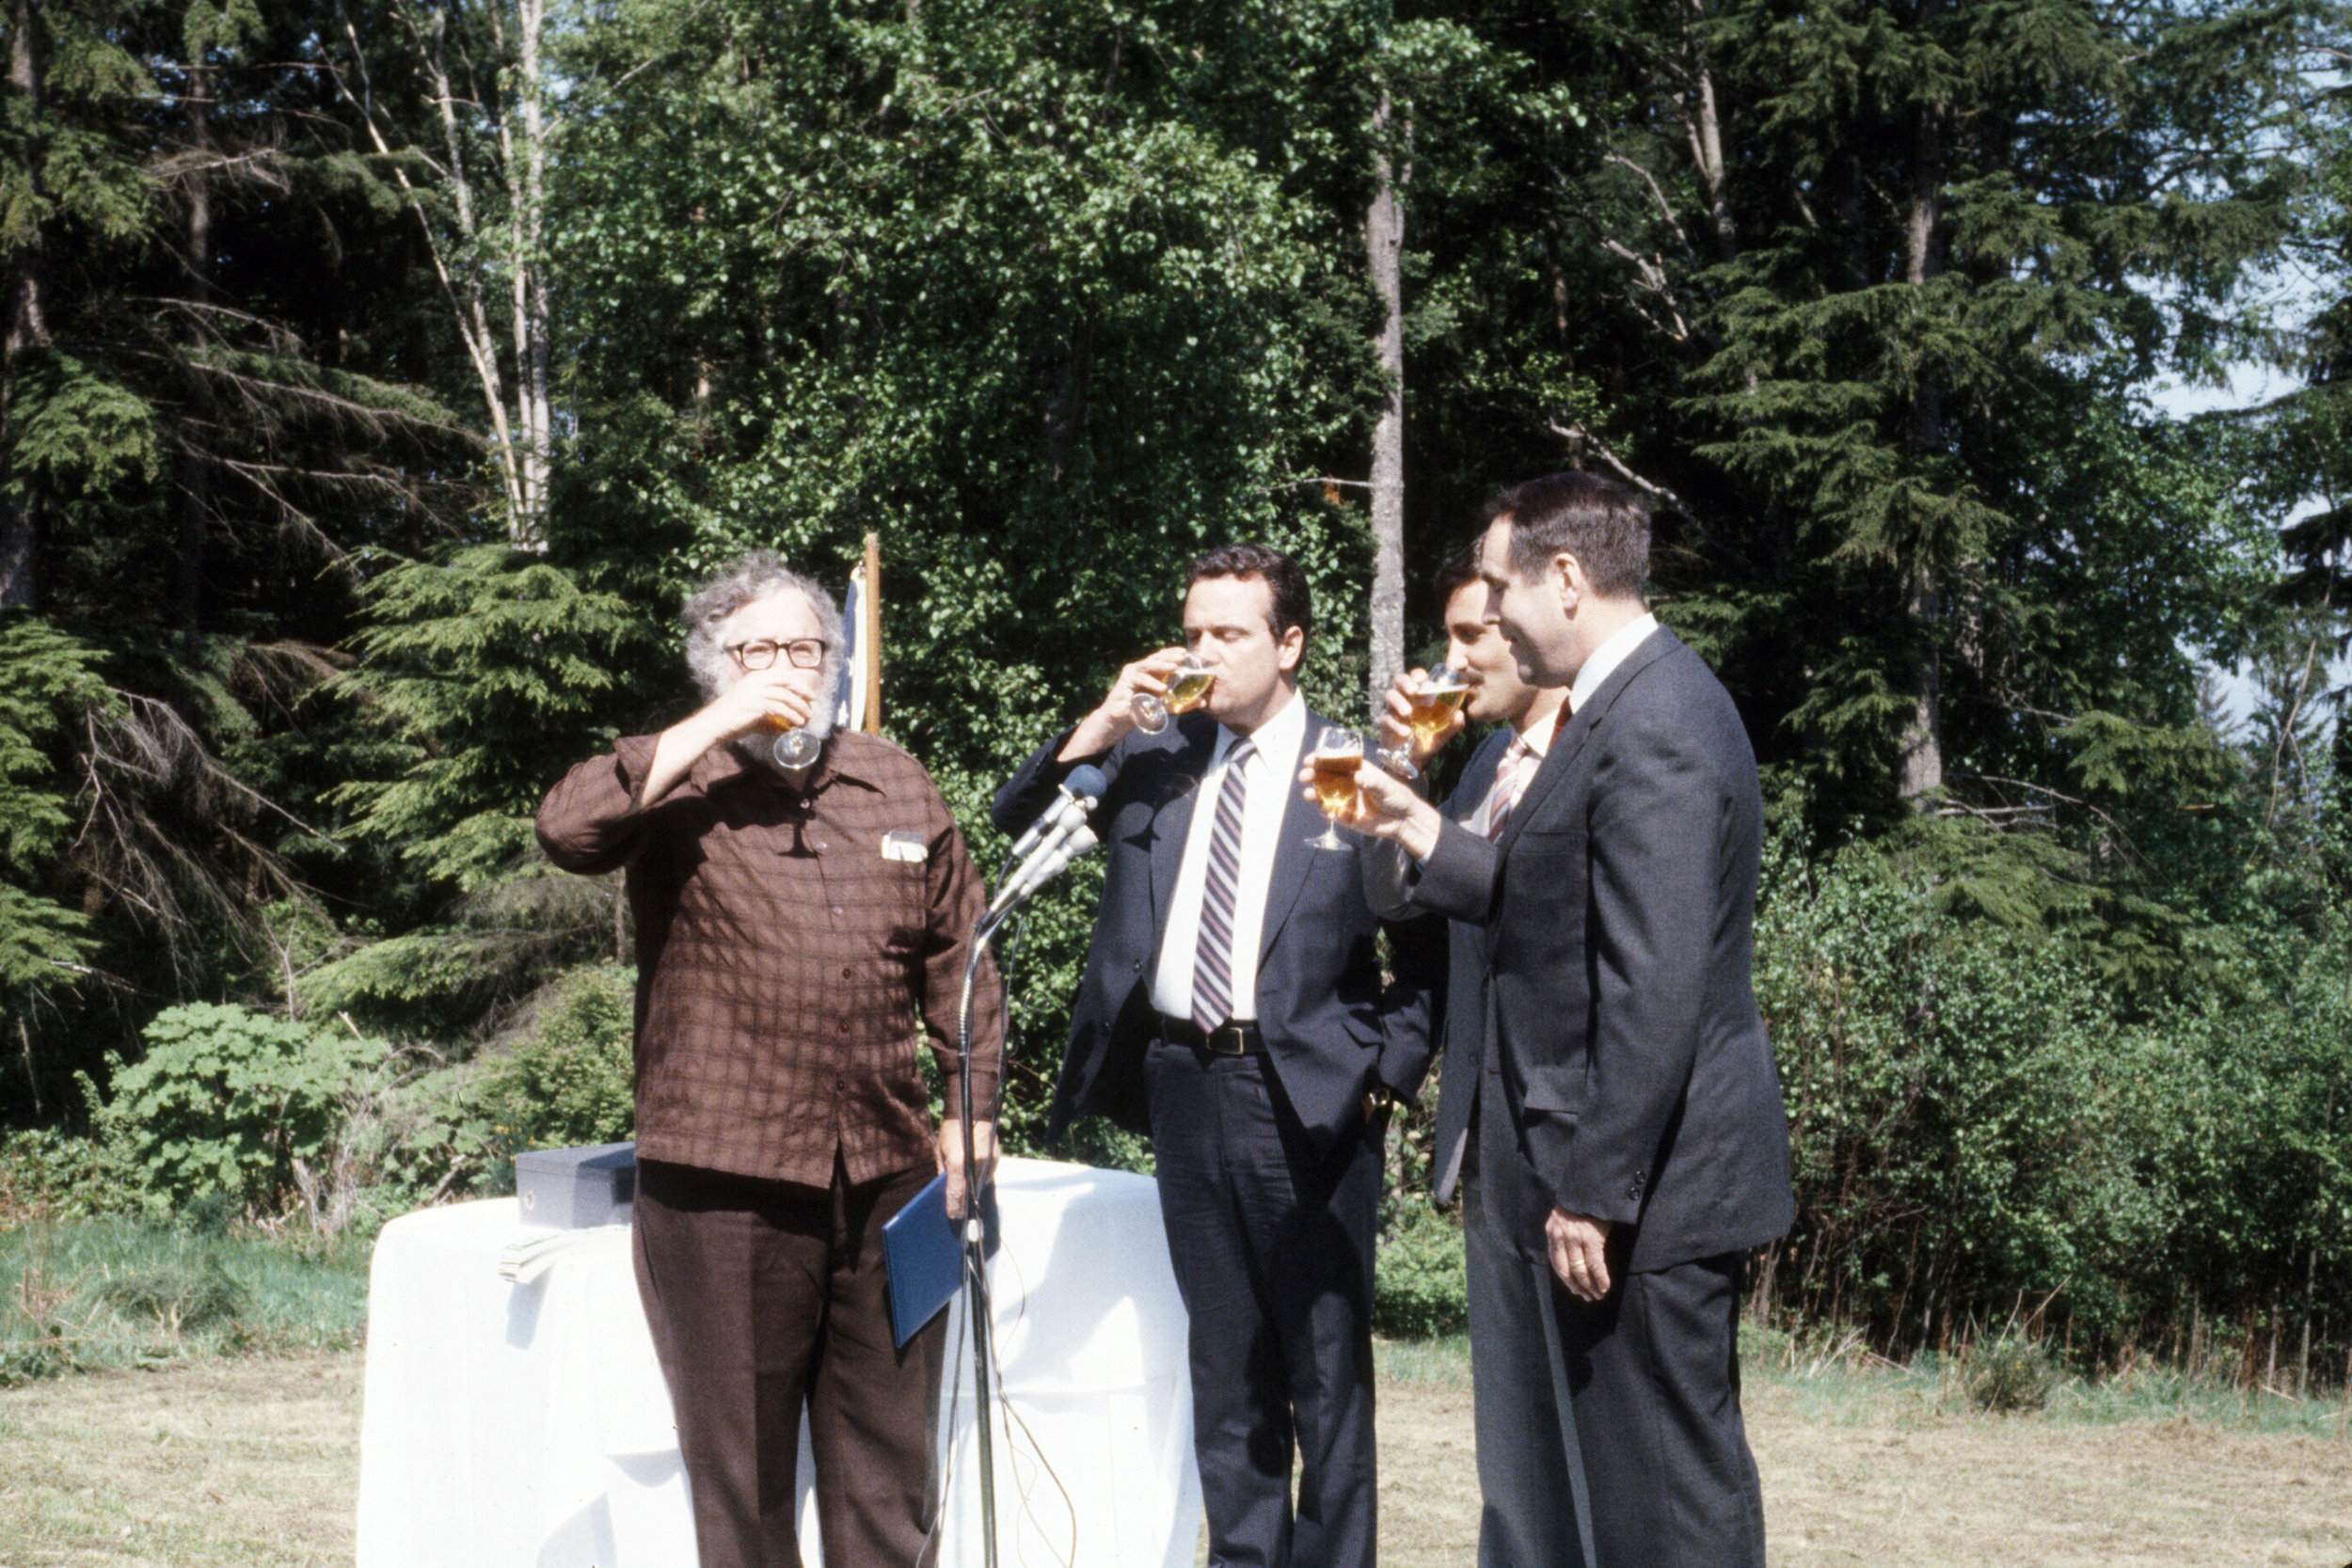 A Celebratory Toast – Harvey Manning, Randy Revelle, Daon corporate representative and Bruce Laing.